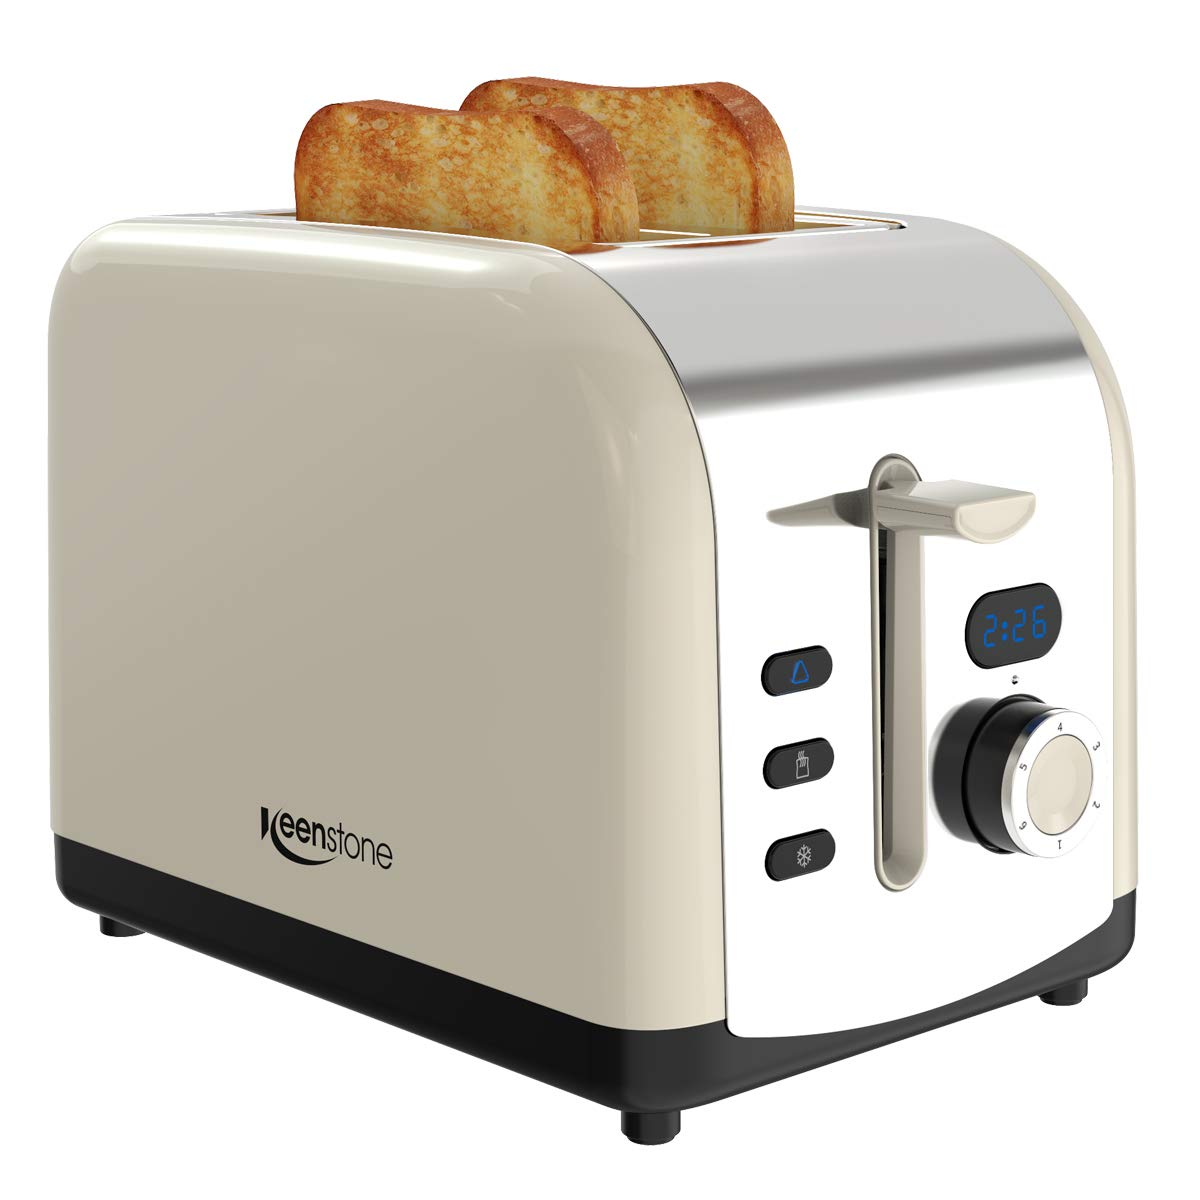 Impressive bread toaster machine!